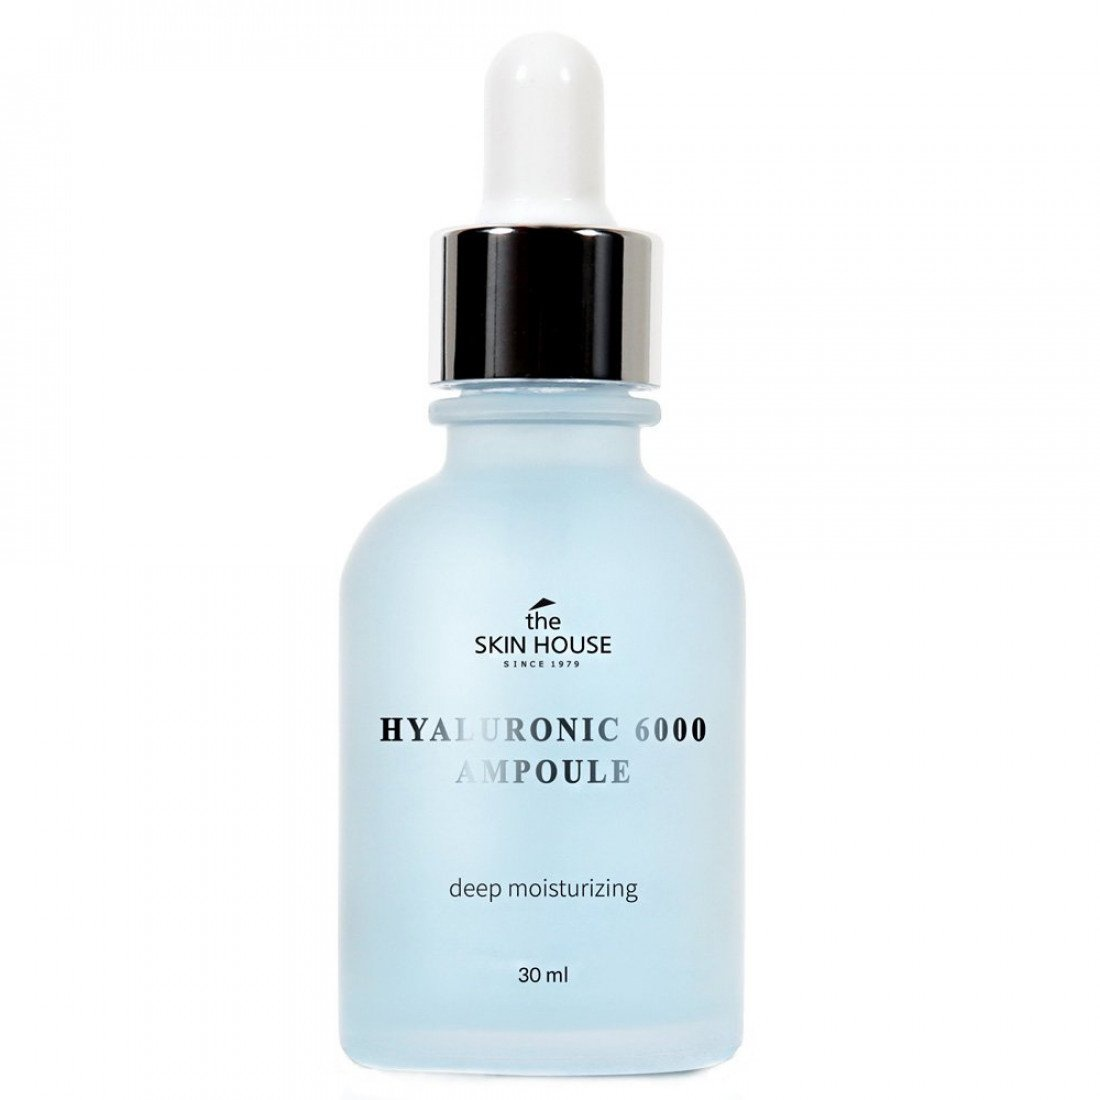 The Skin House Hyaluronic 6000 Ampoule